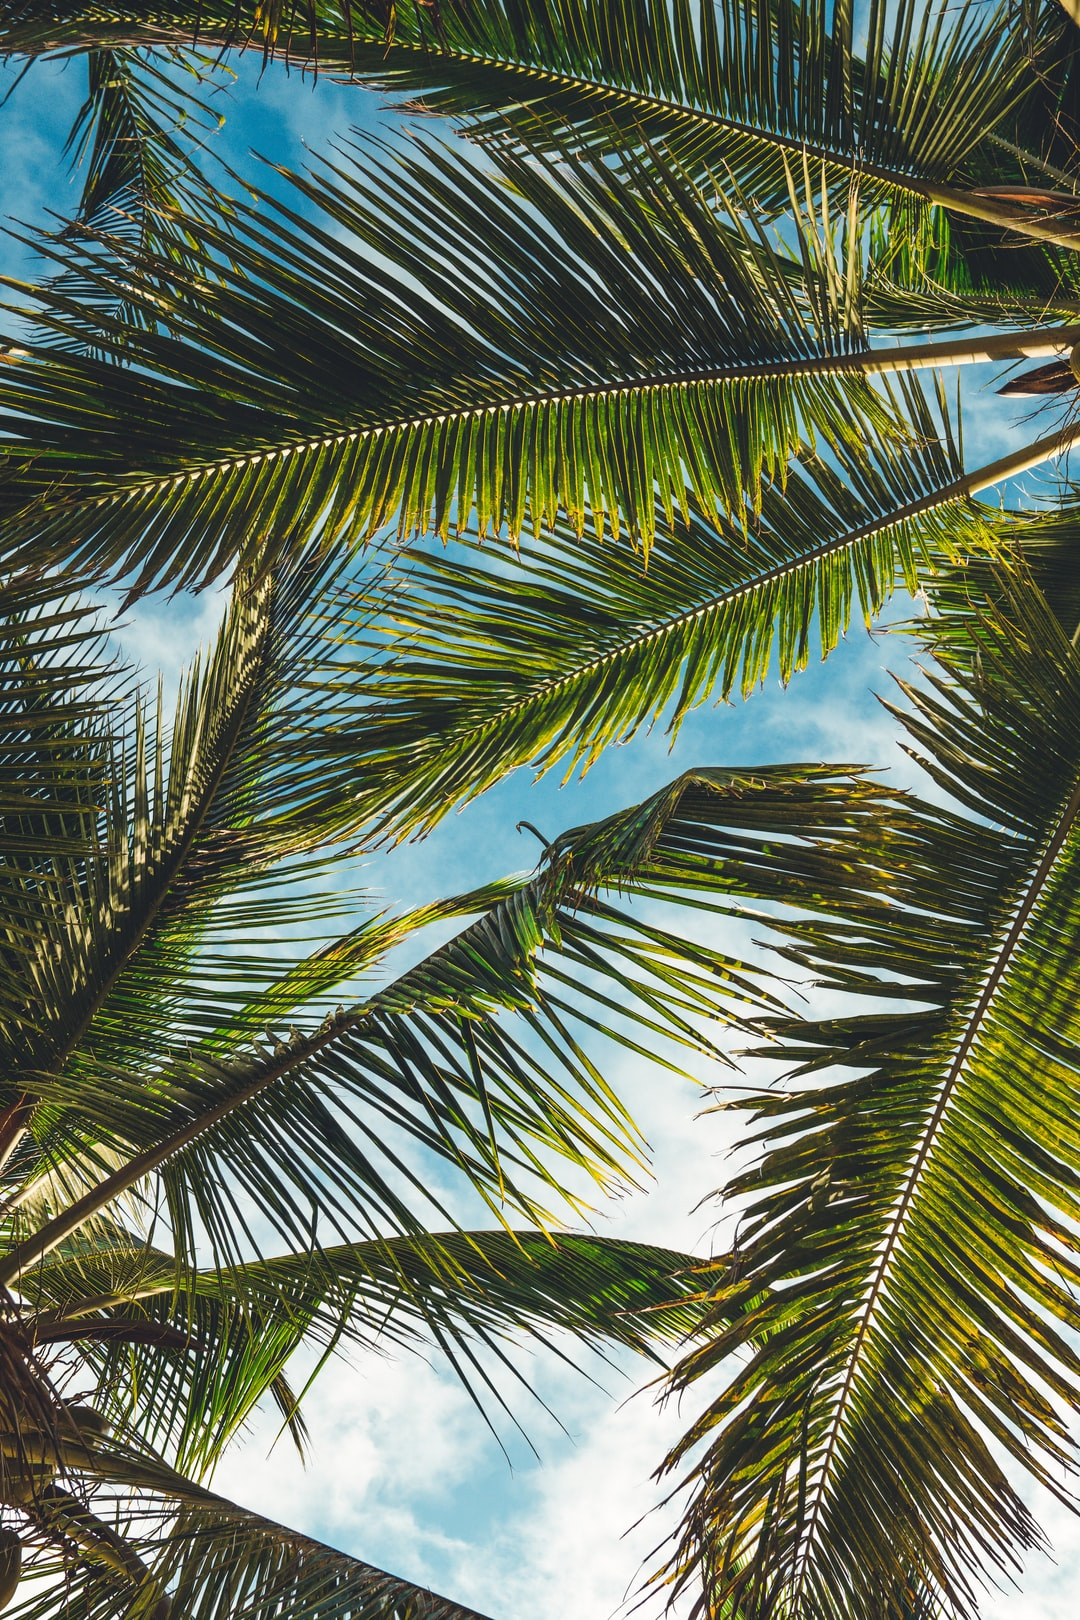 Coconut Tree Leaves Under Blue Sky During Daytime Photo